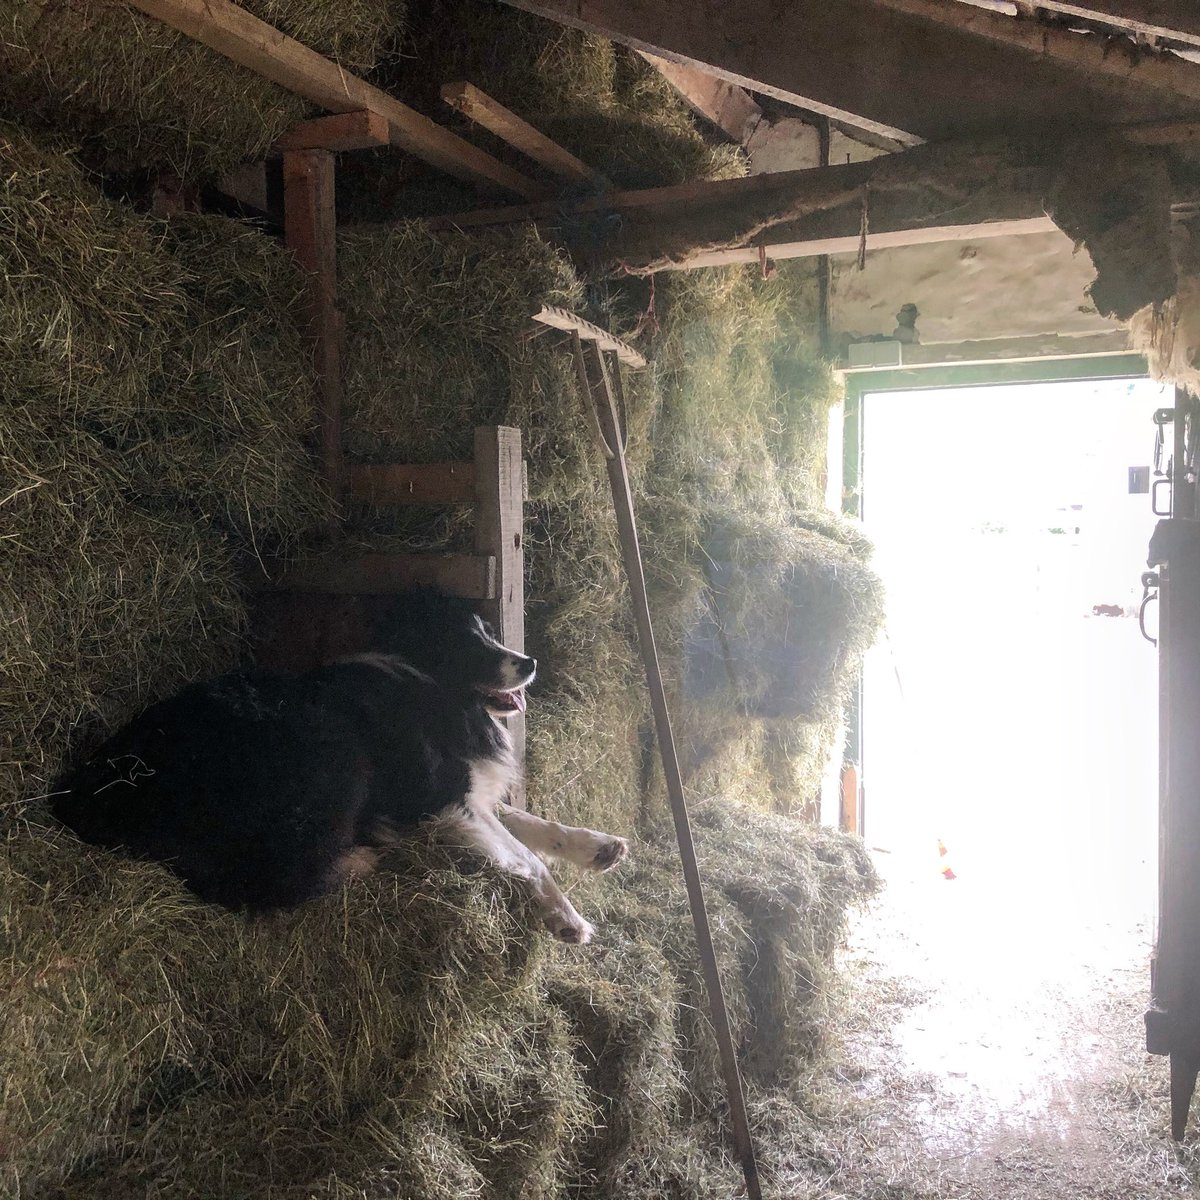 Stacked to the rafters. #hilfarm #hay #shepherdess @NFUCountrysidepic.twitter.com/XH3fggl6Uy